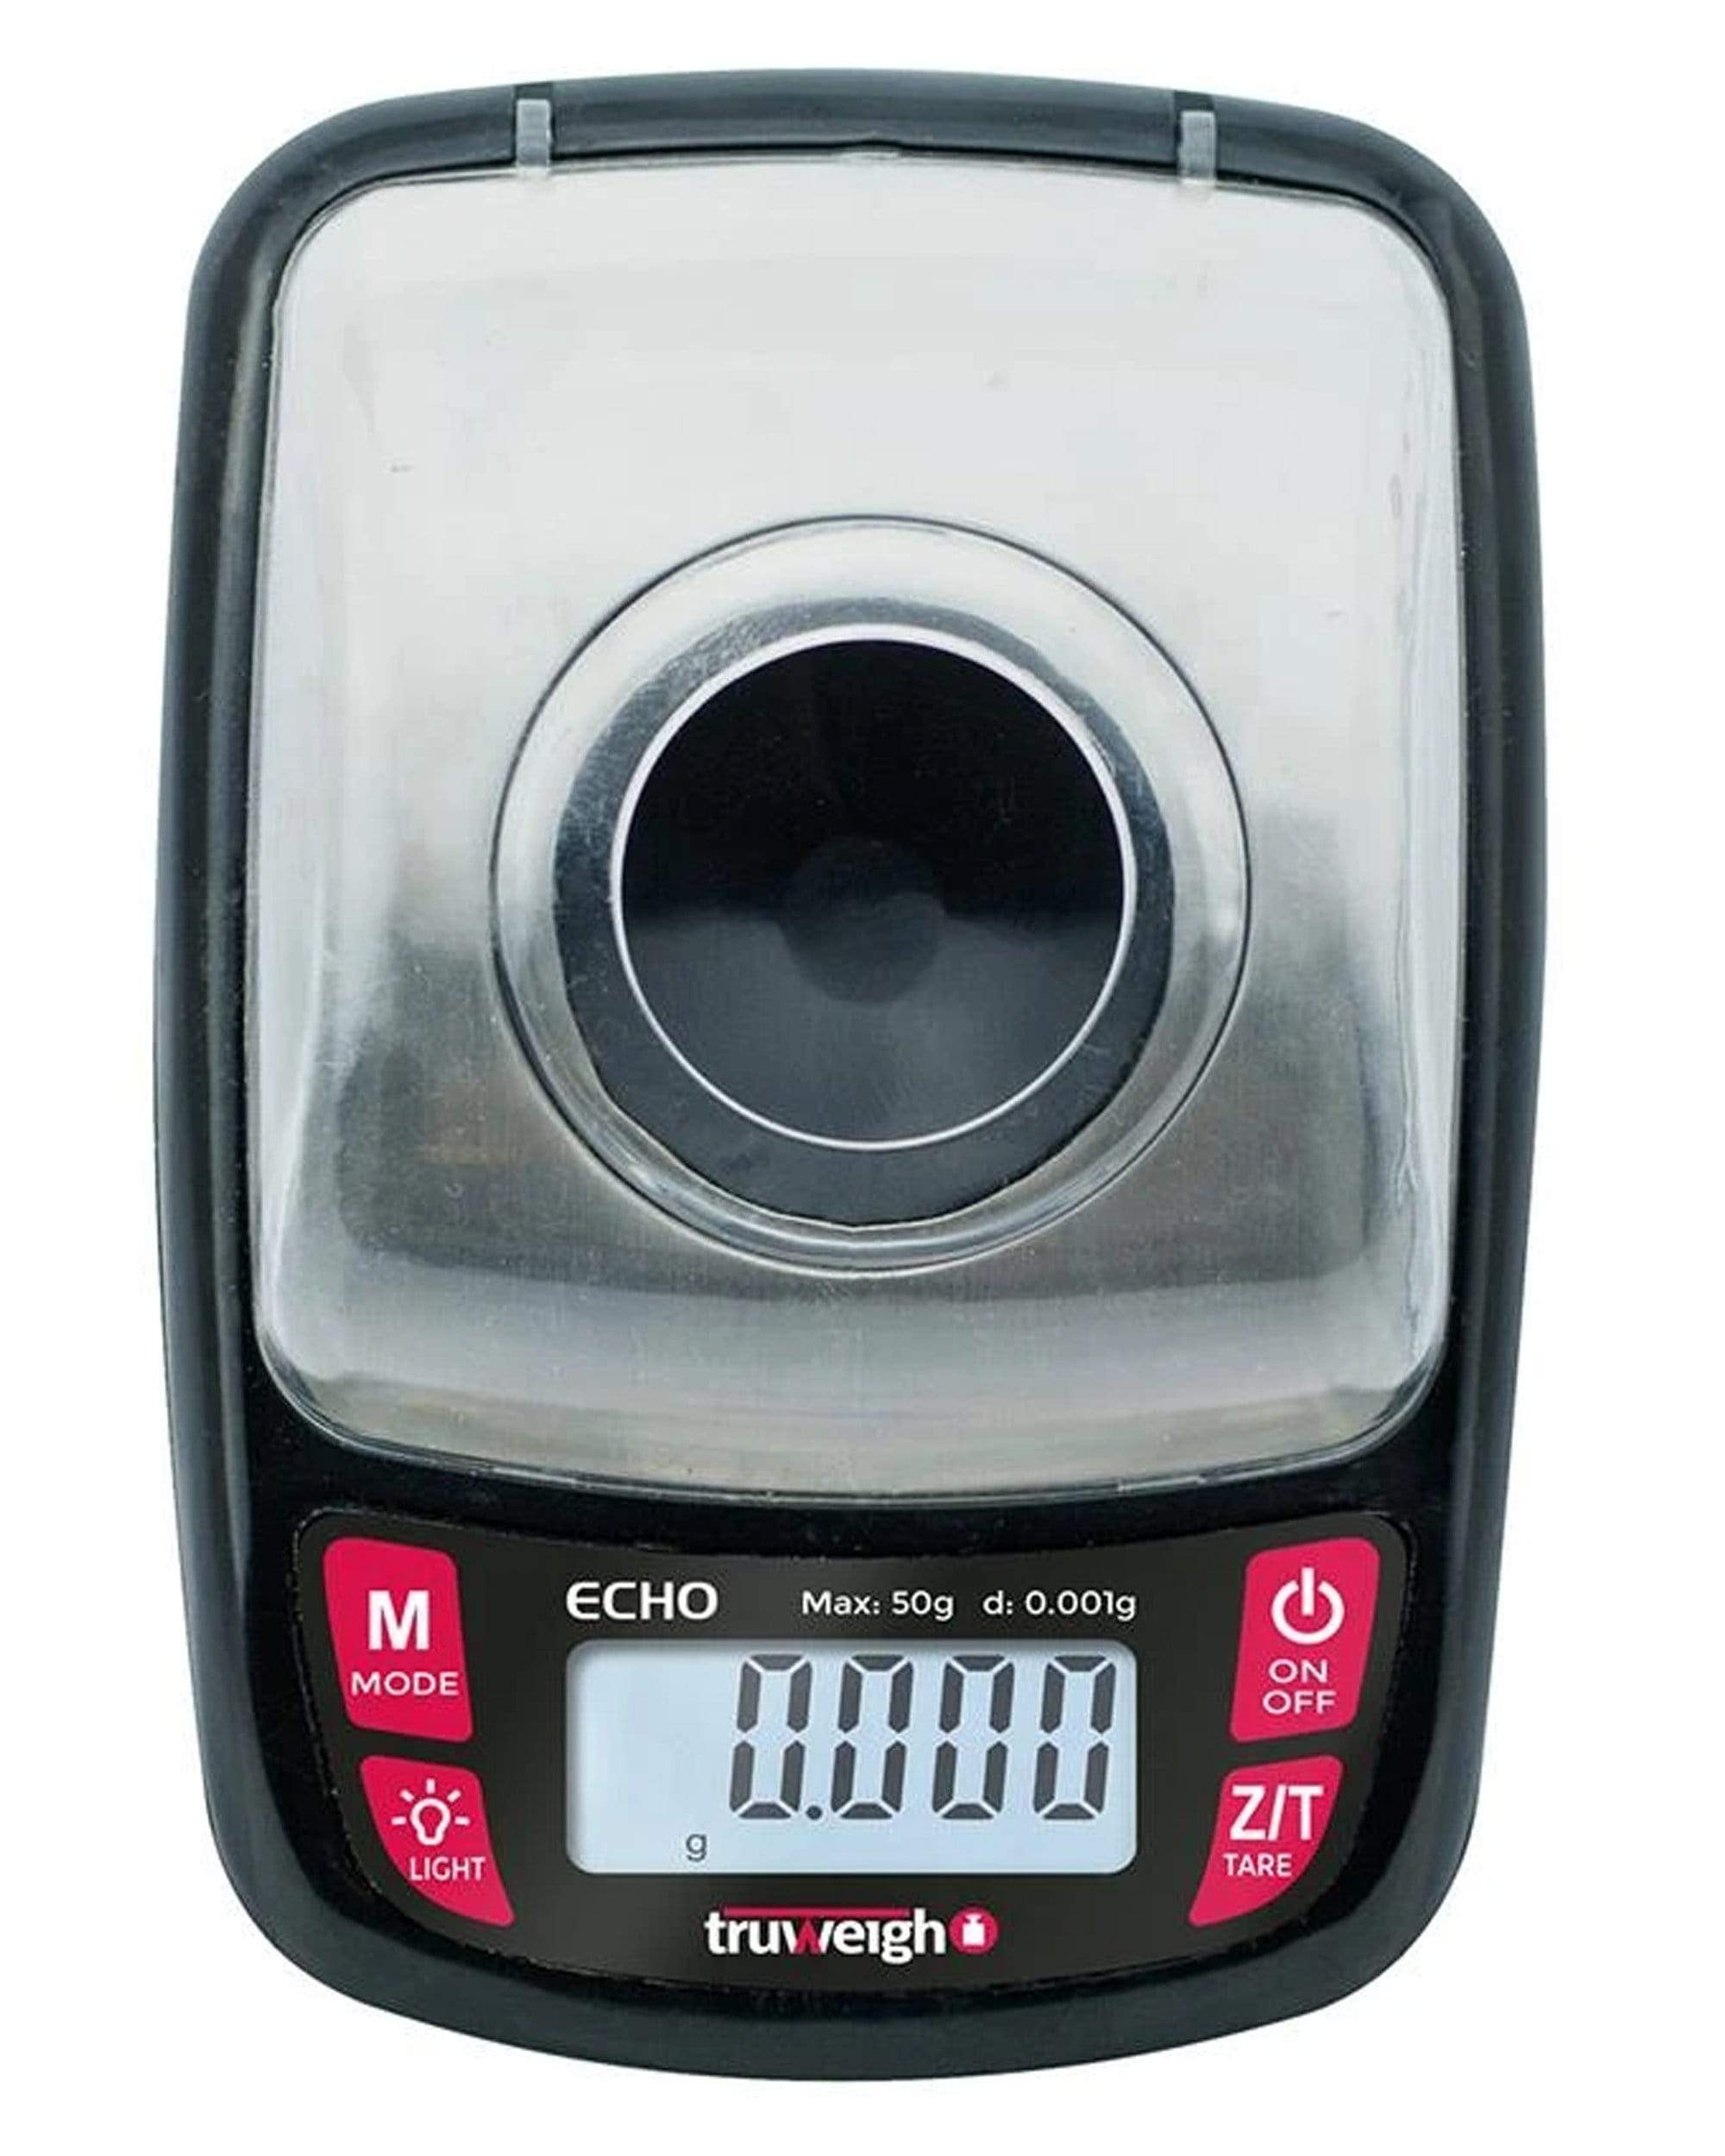 Truweigh ECHO Digital Miligram Scale